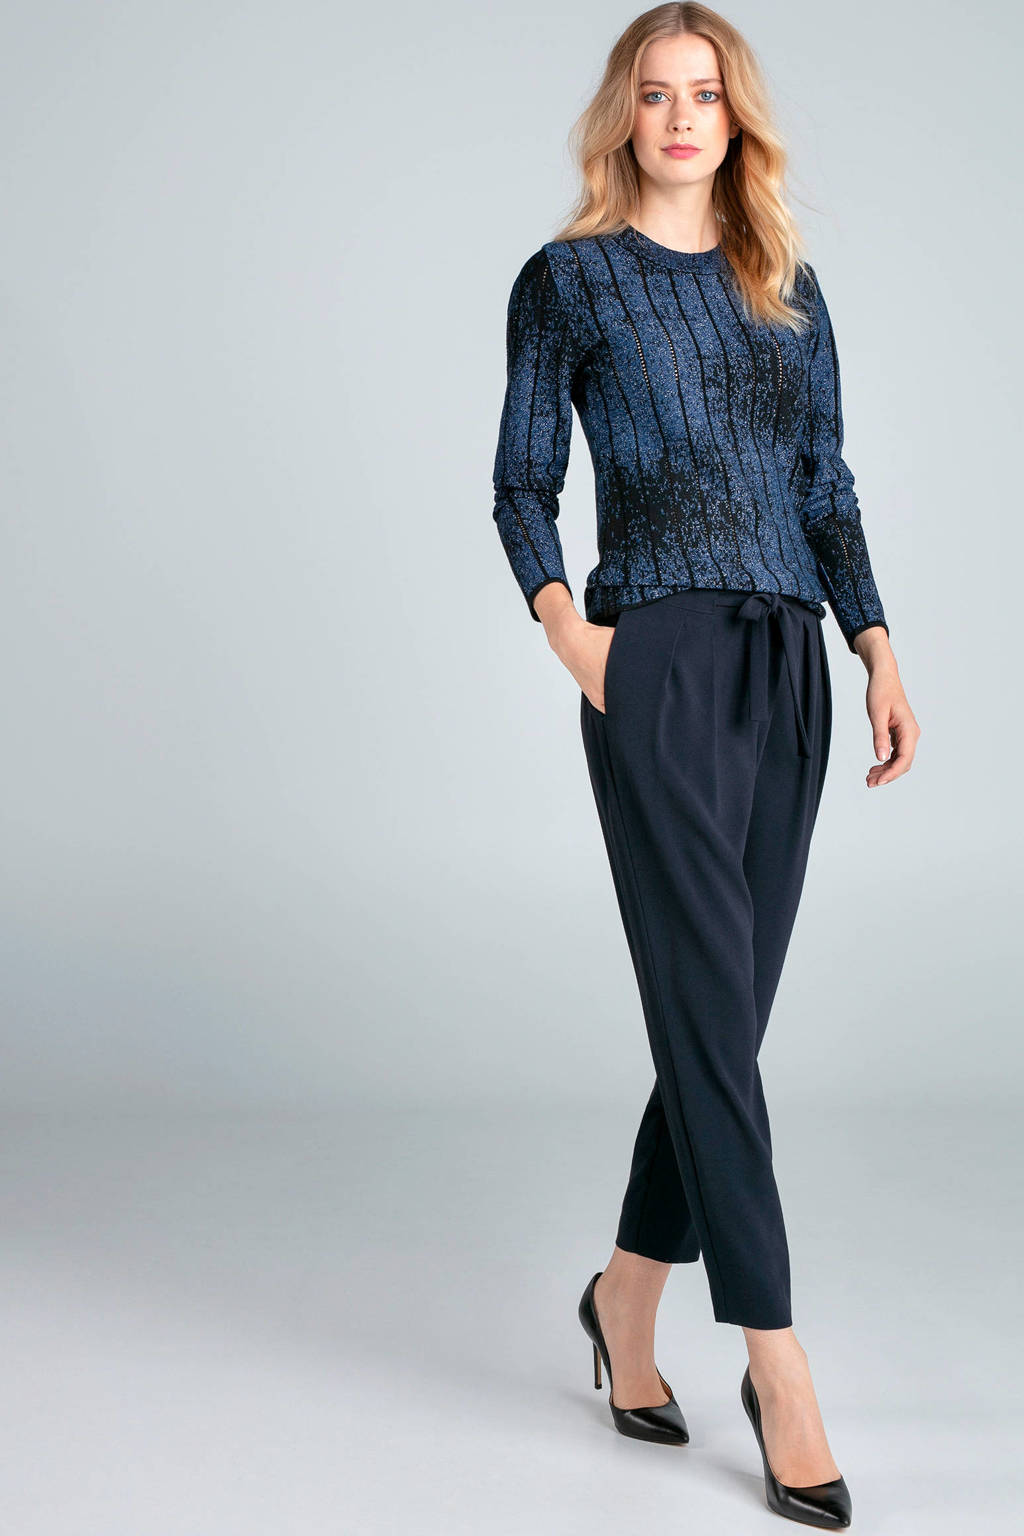 Claudia Sträter tapered fit broek donkerblauw, Donkerblauw